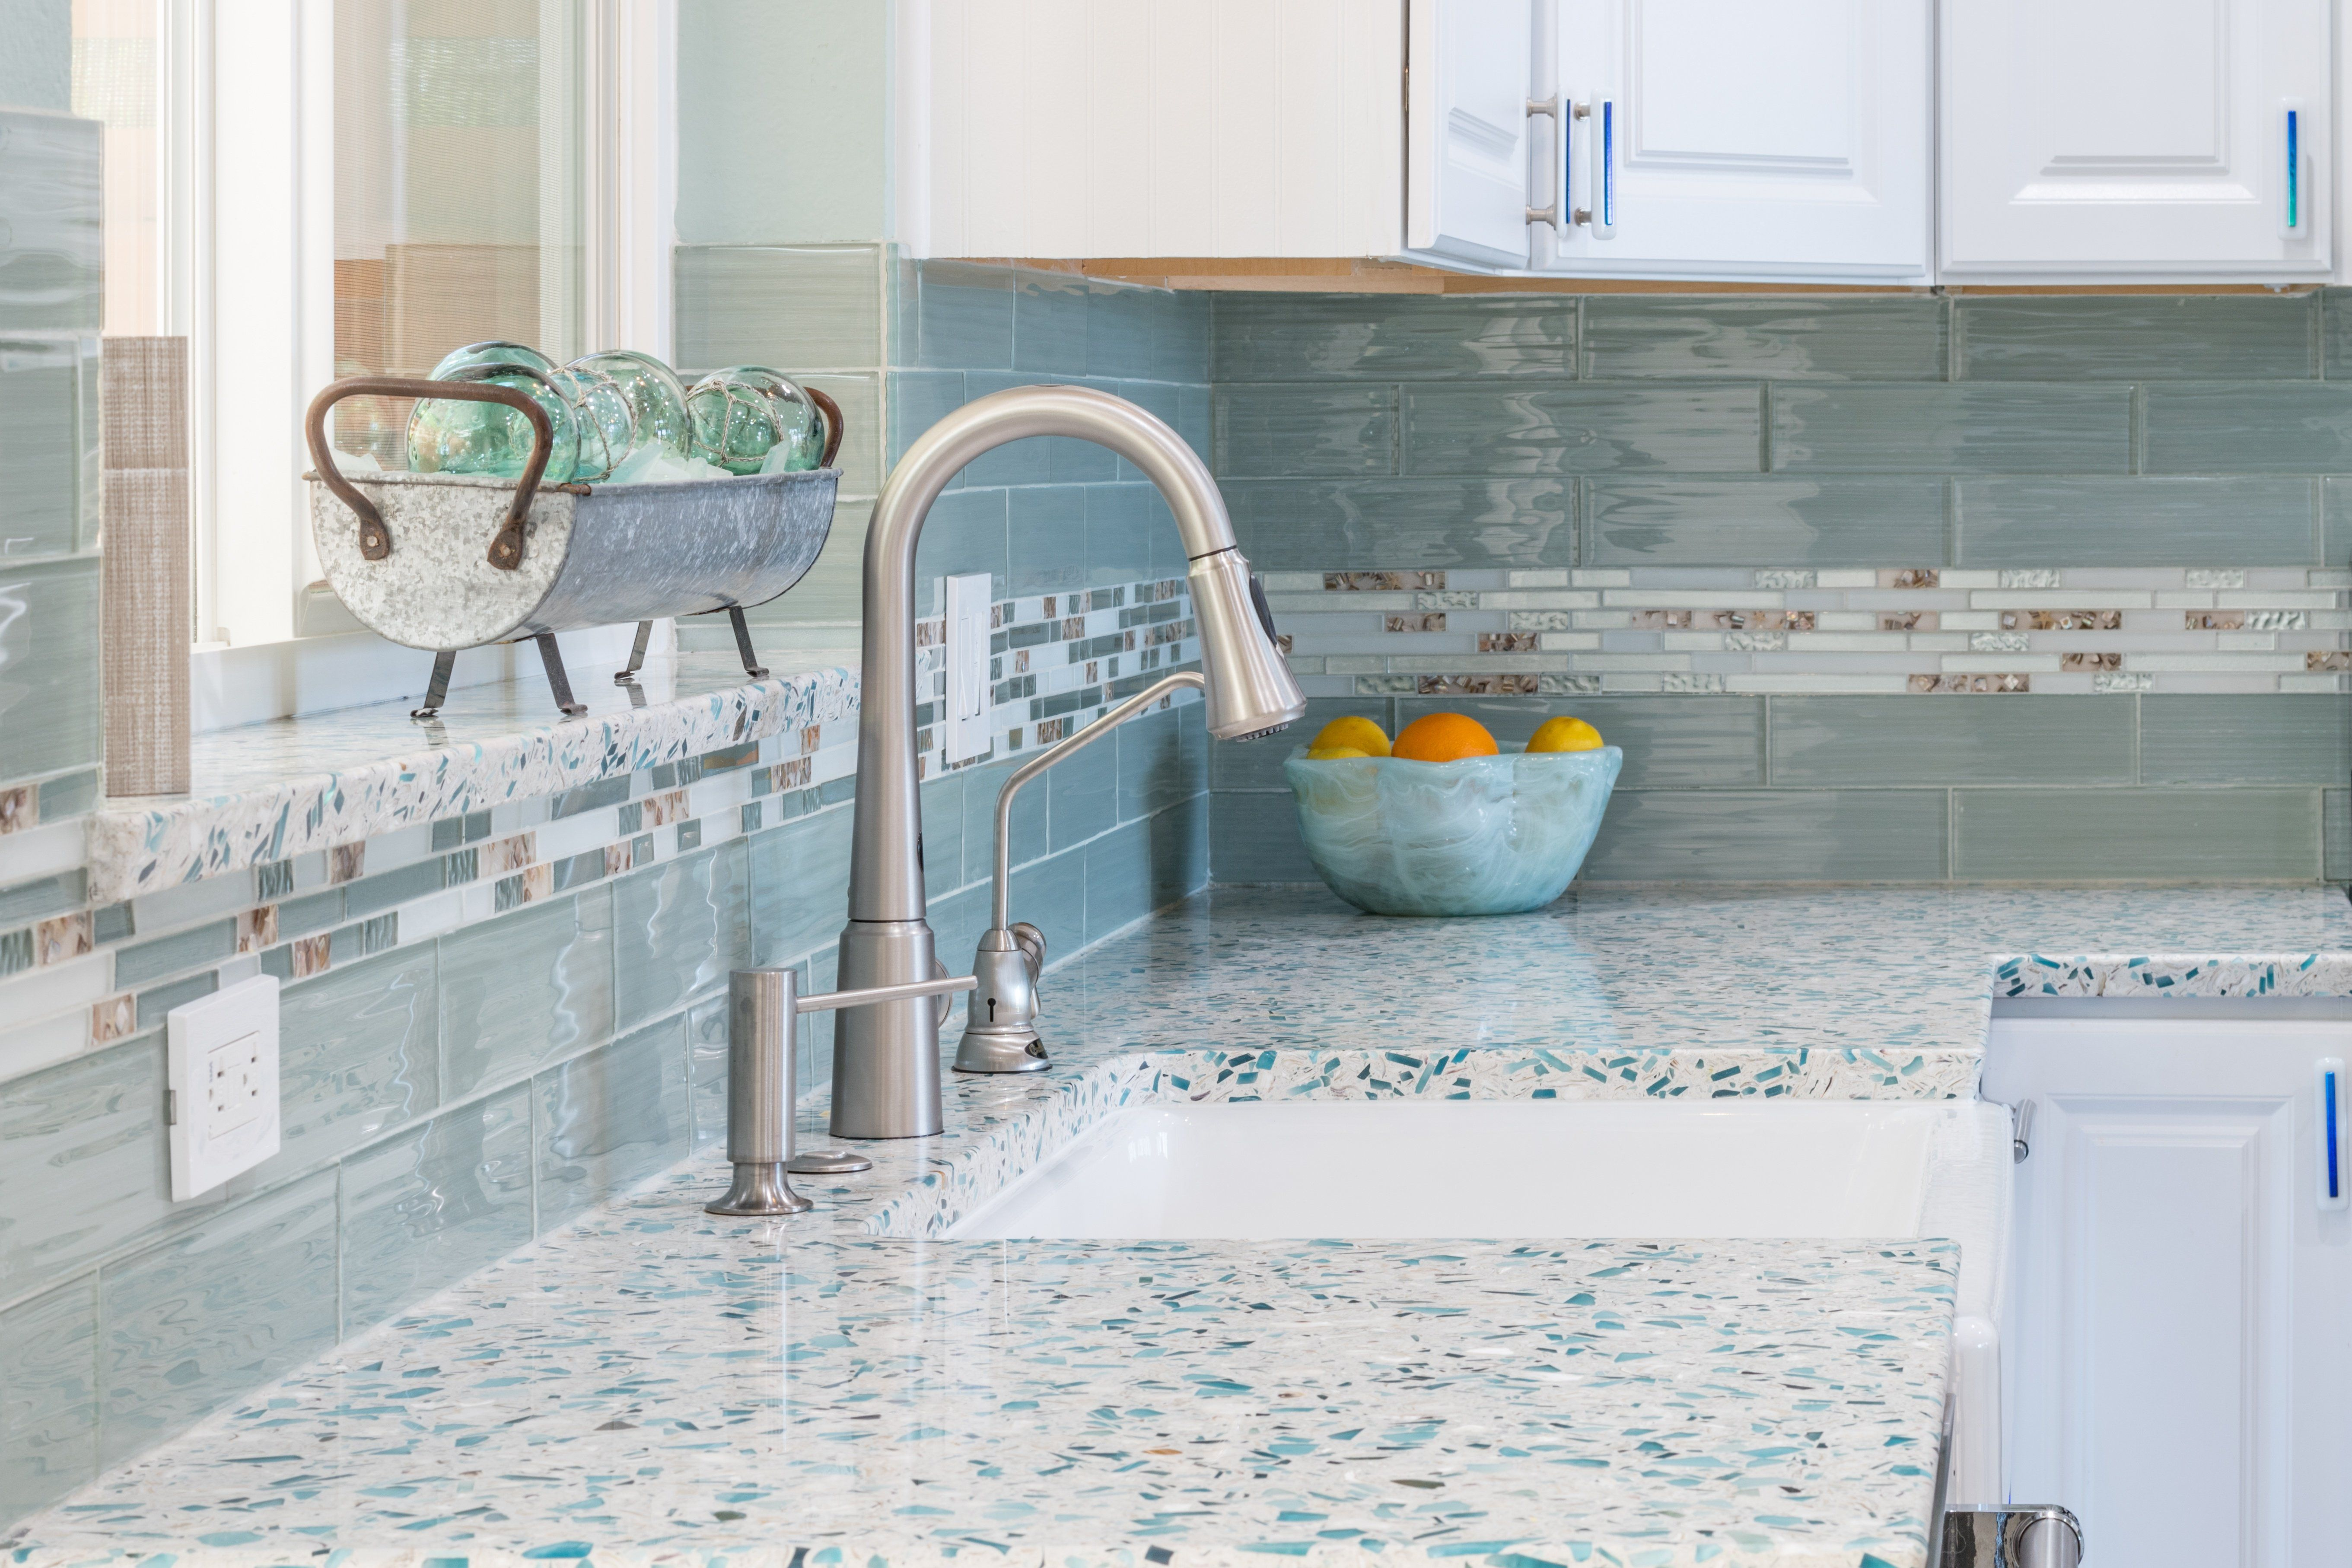 Cali Couple Brings The Beach Inside For A Coastal Kitchen With Turquoise Recyc In 2020 Replacing Kitchen Countertops Kitchen Remodel Countertops Coastal Kitchen Design